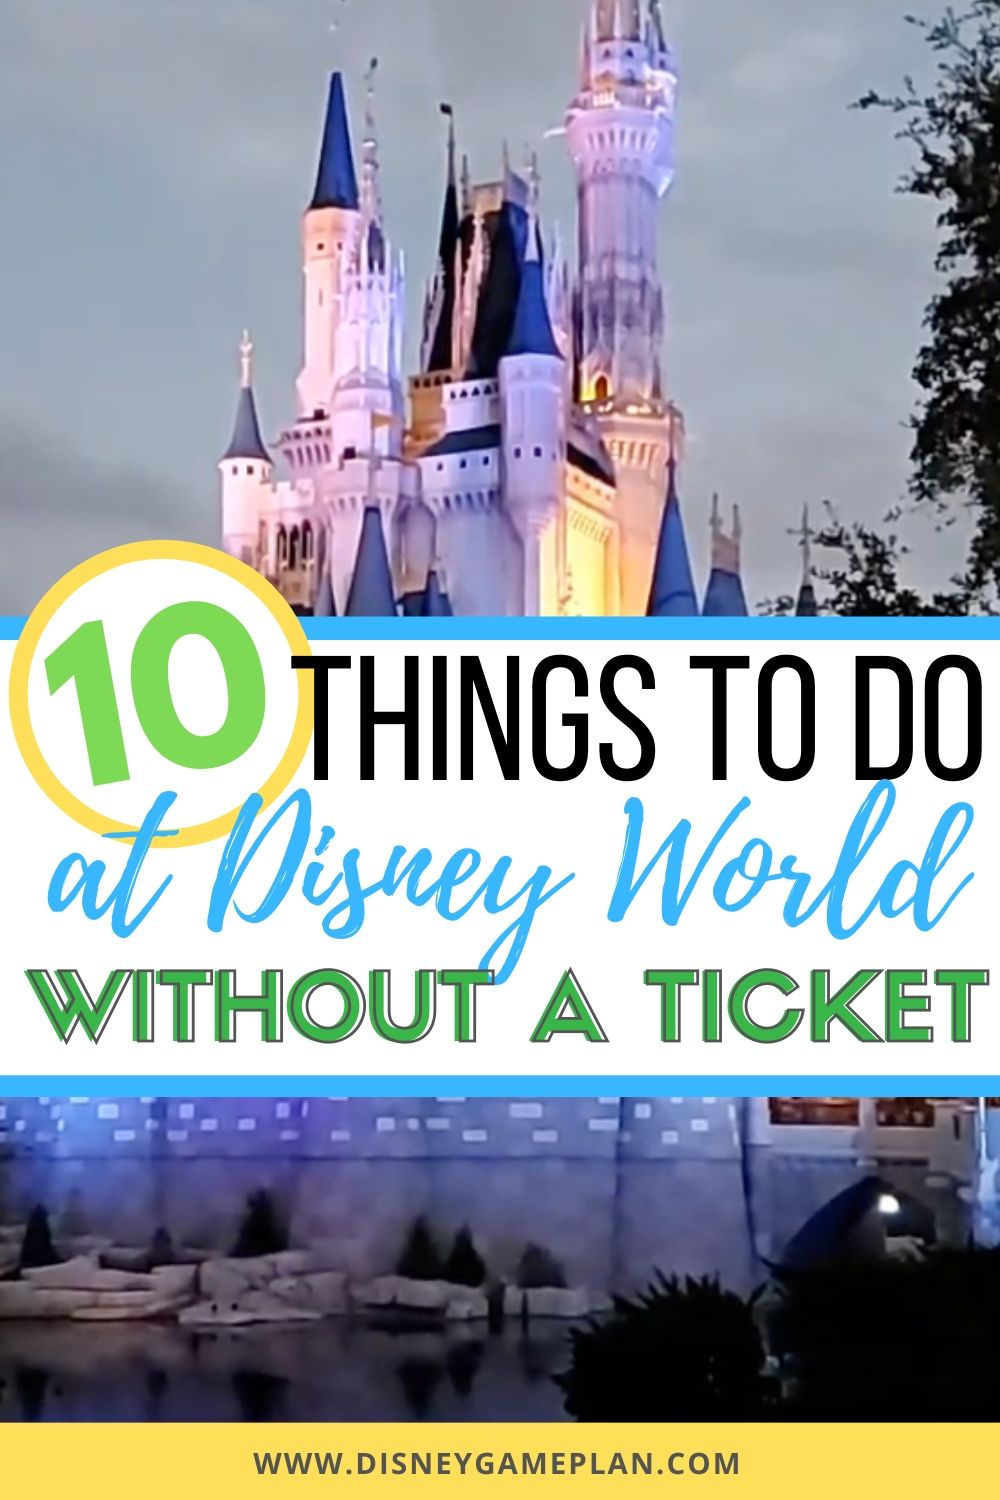 Once you get started looking for things to do without park admission, you will be surprised how extensive the list of Disney World activities can be.